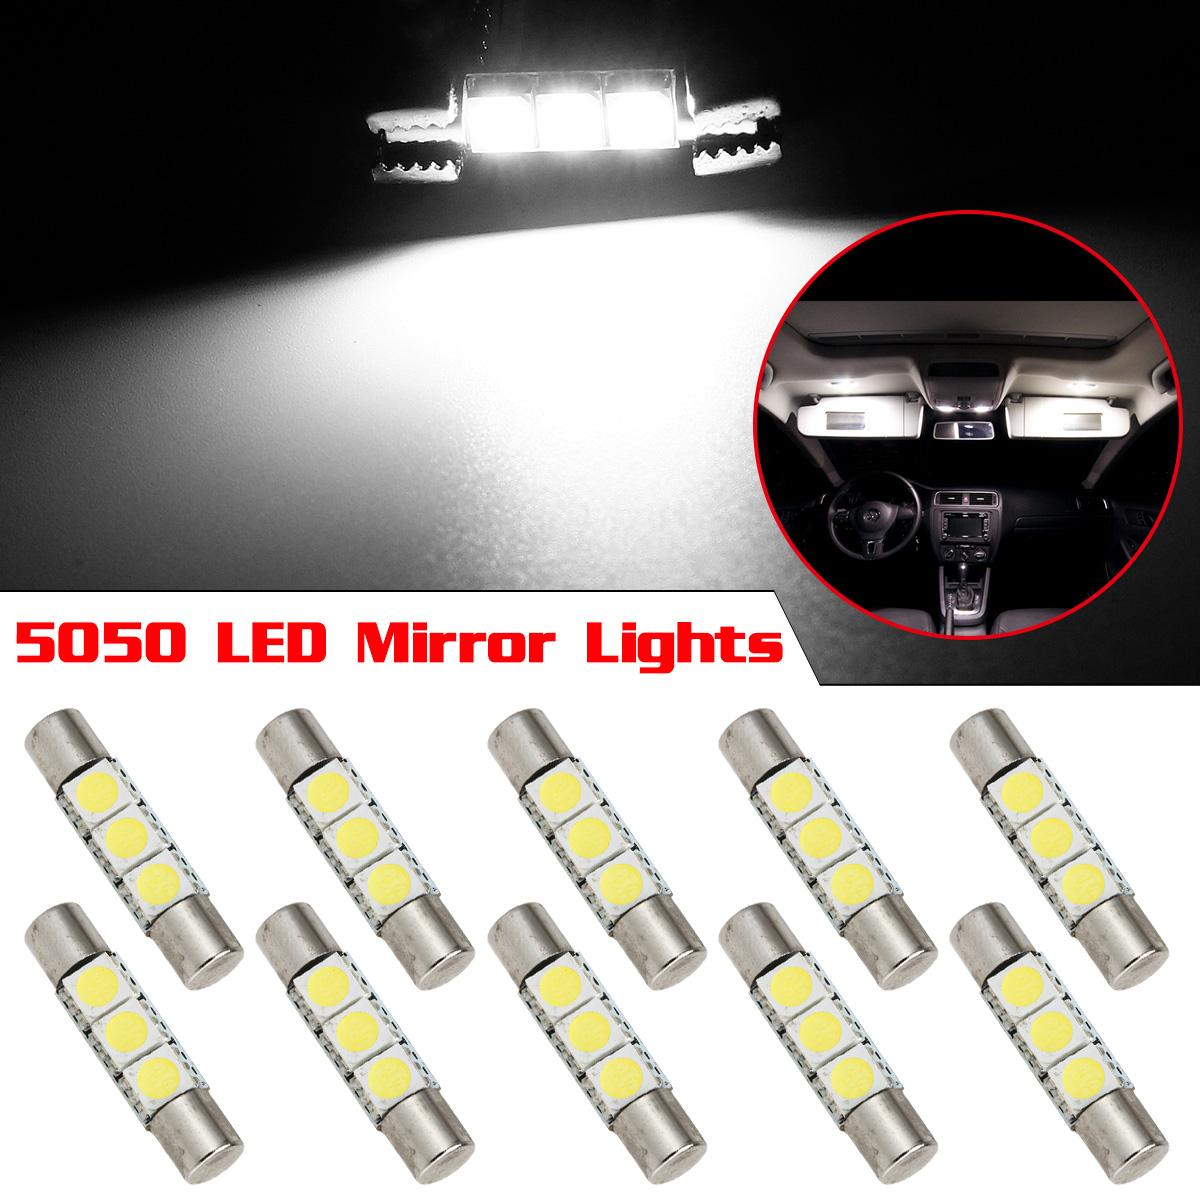 10x xenon white 3smd 5050 led bulbs interior sun visor vanity mirror lights 6641 ebay. Black Bedroom Furniture Sets. Home Design Ideas